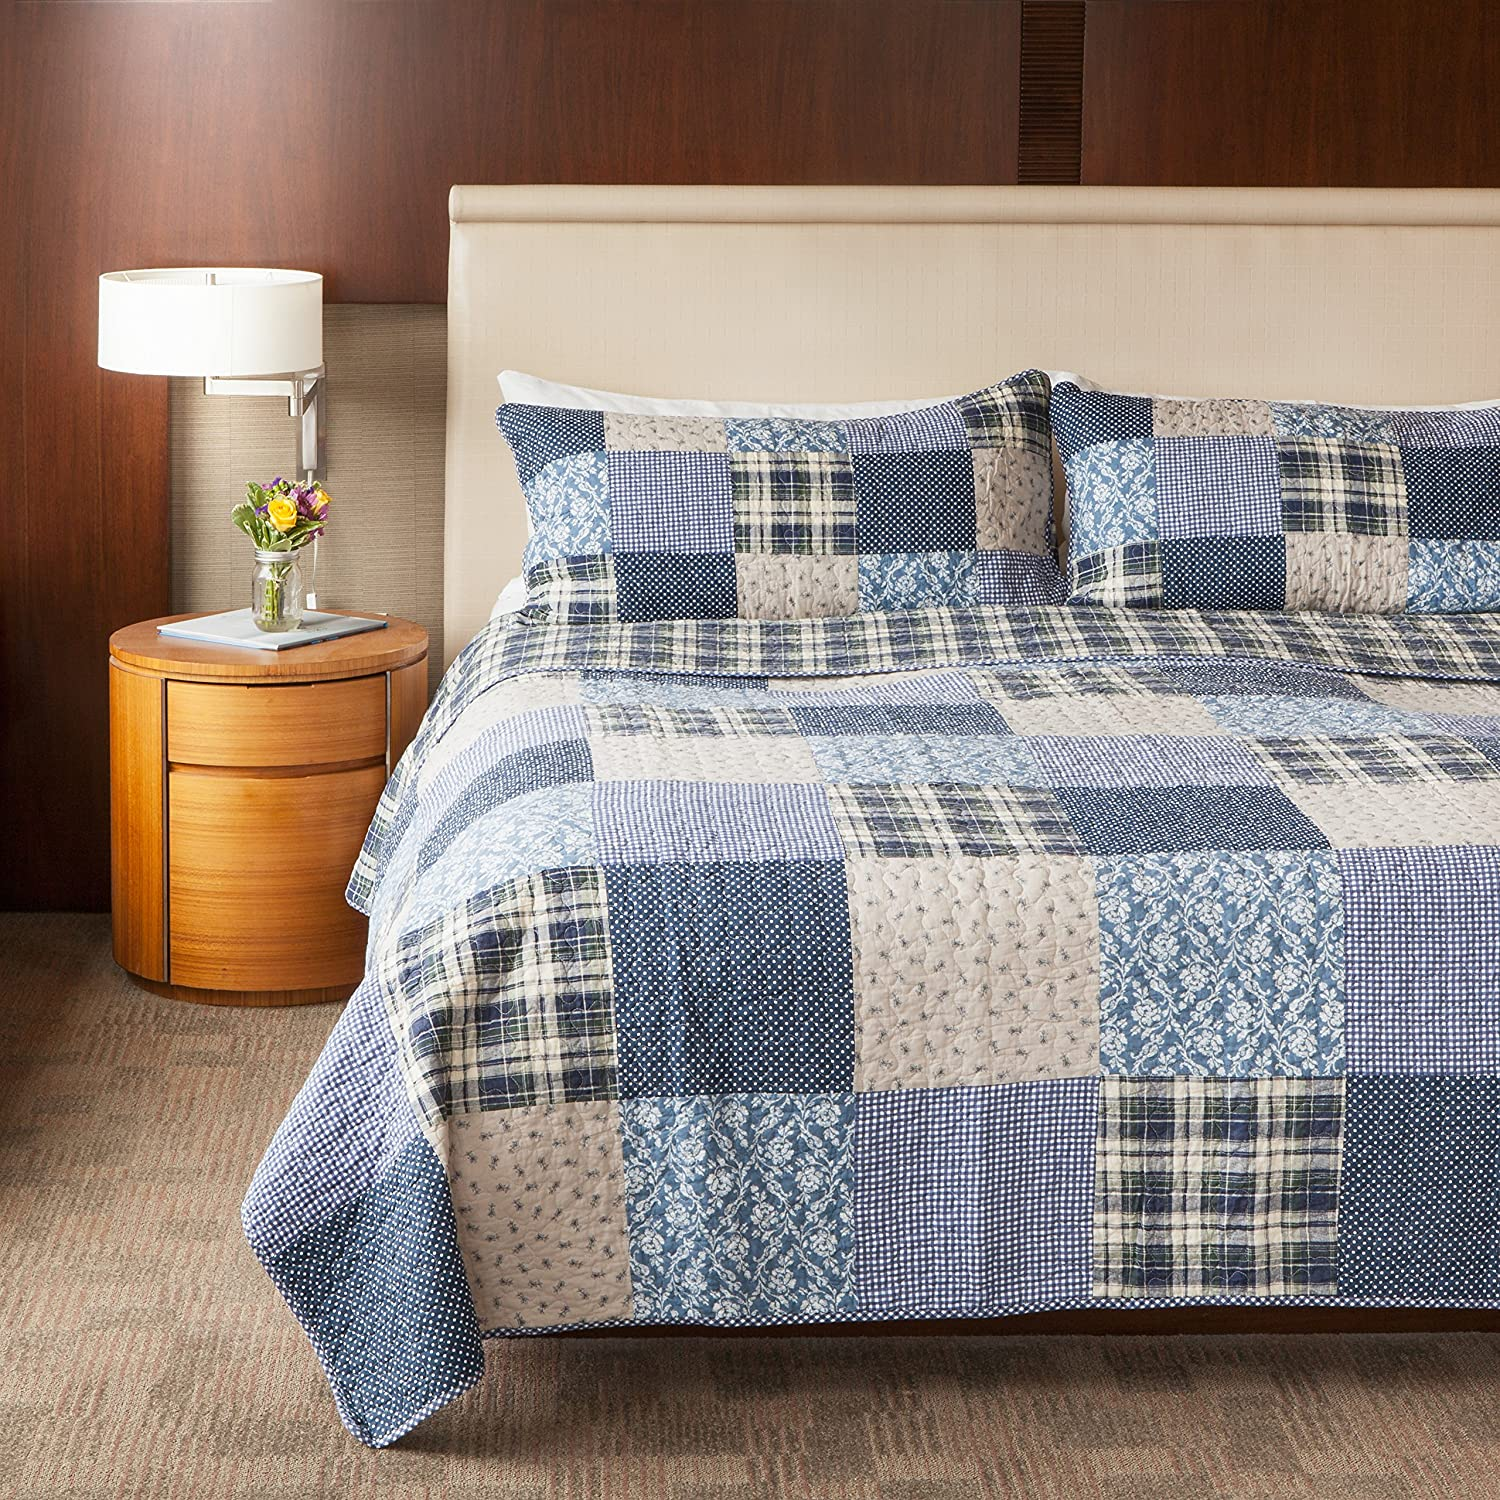 Slpr Blue Symphony 3 Piece Patchwork Cotton Bedding Quilt Set Queen With 2 Shams Country Quilted Bedspread Home Kitchen